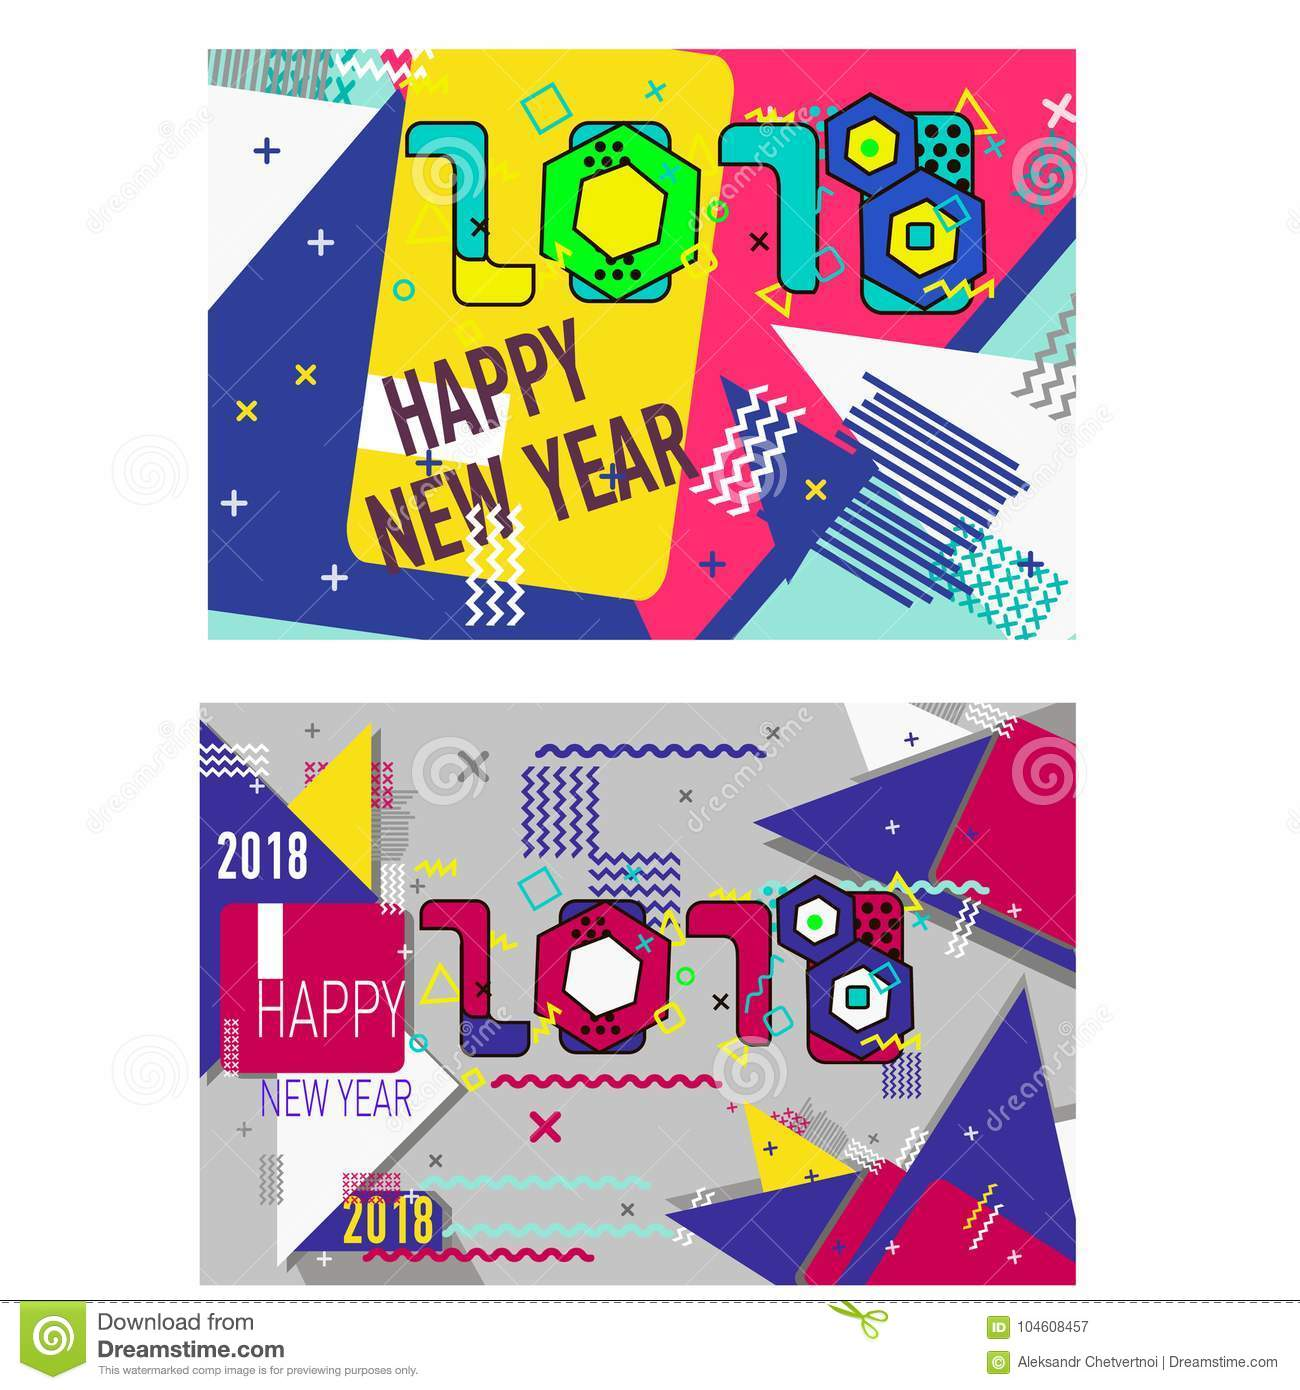 merry christmas new year design eye catching banner template